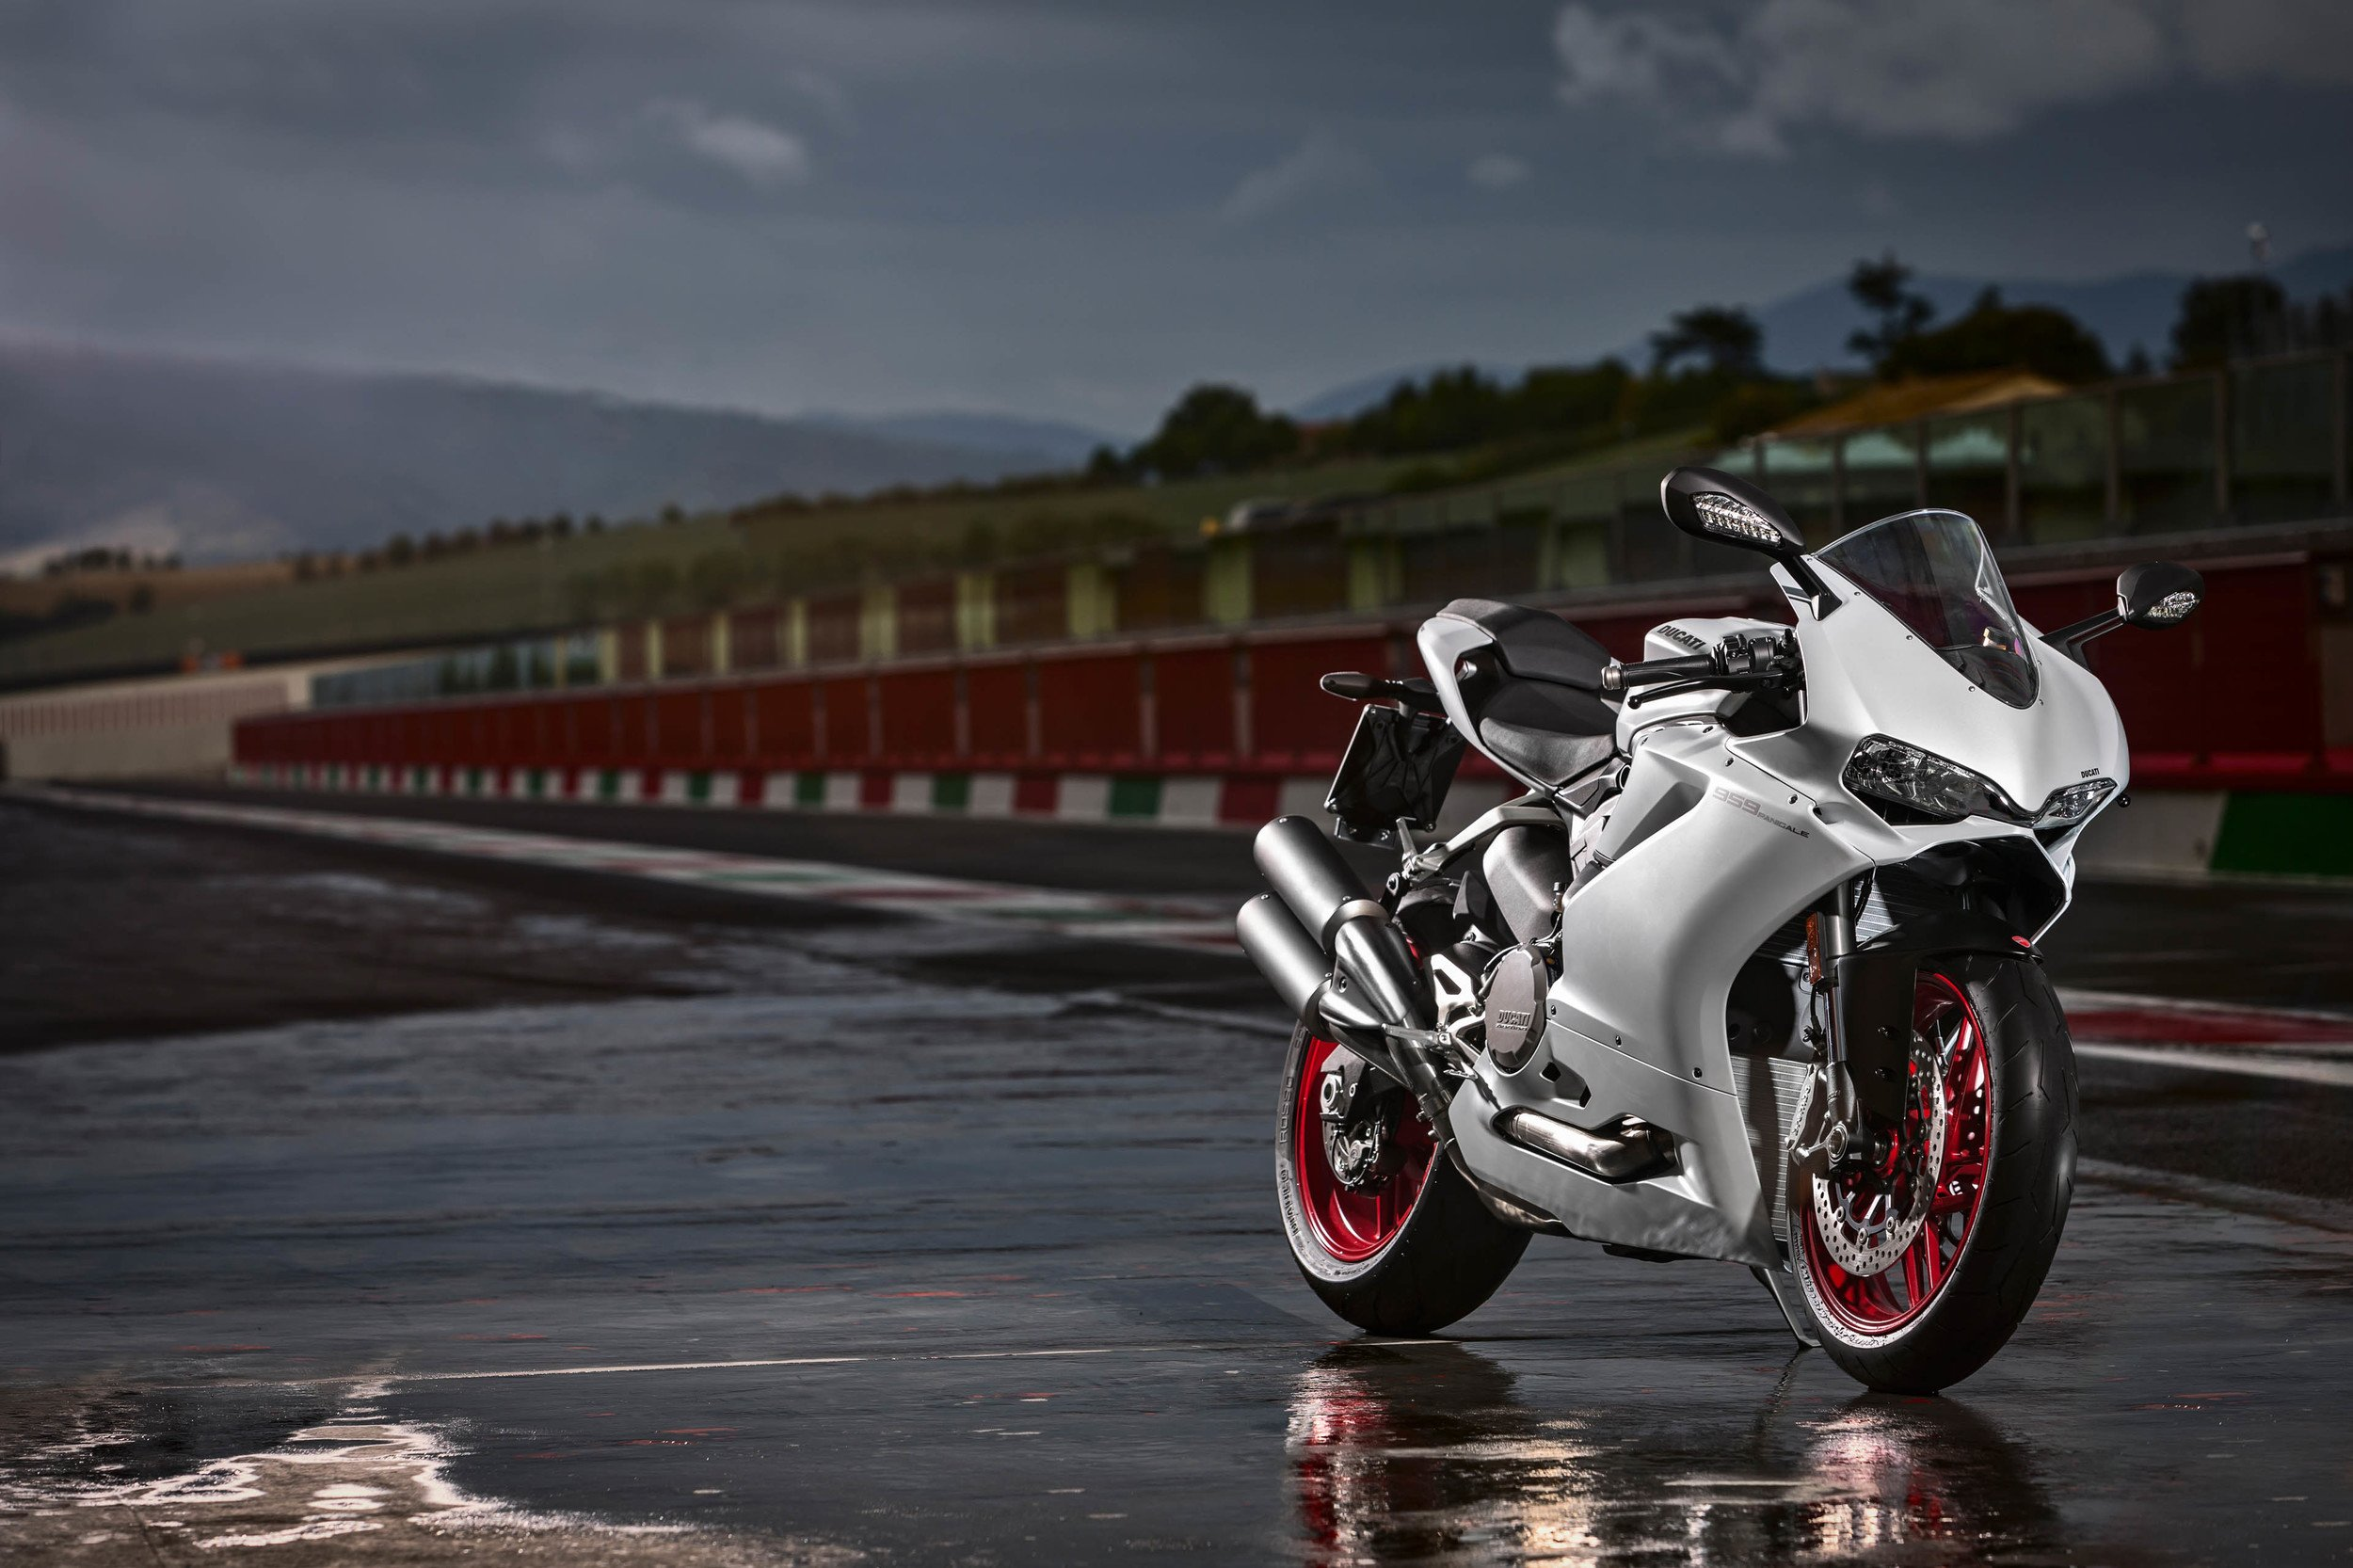 Ducati Panigale 959 2016 motocycles wallpaper background 2500x1666